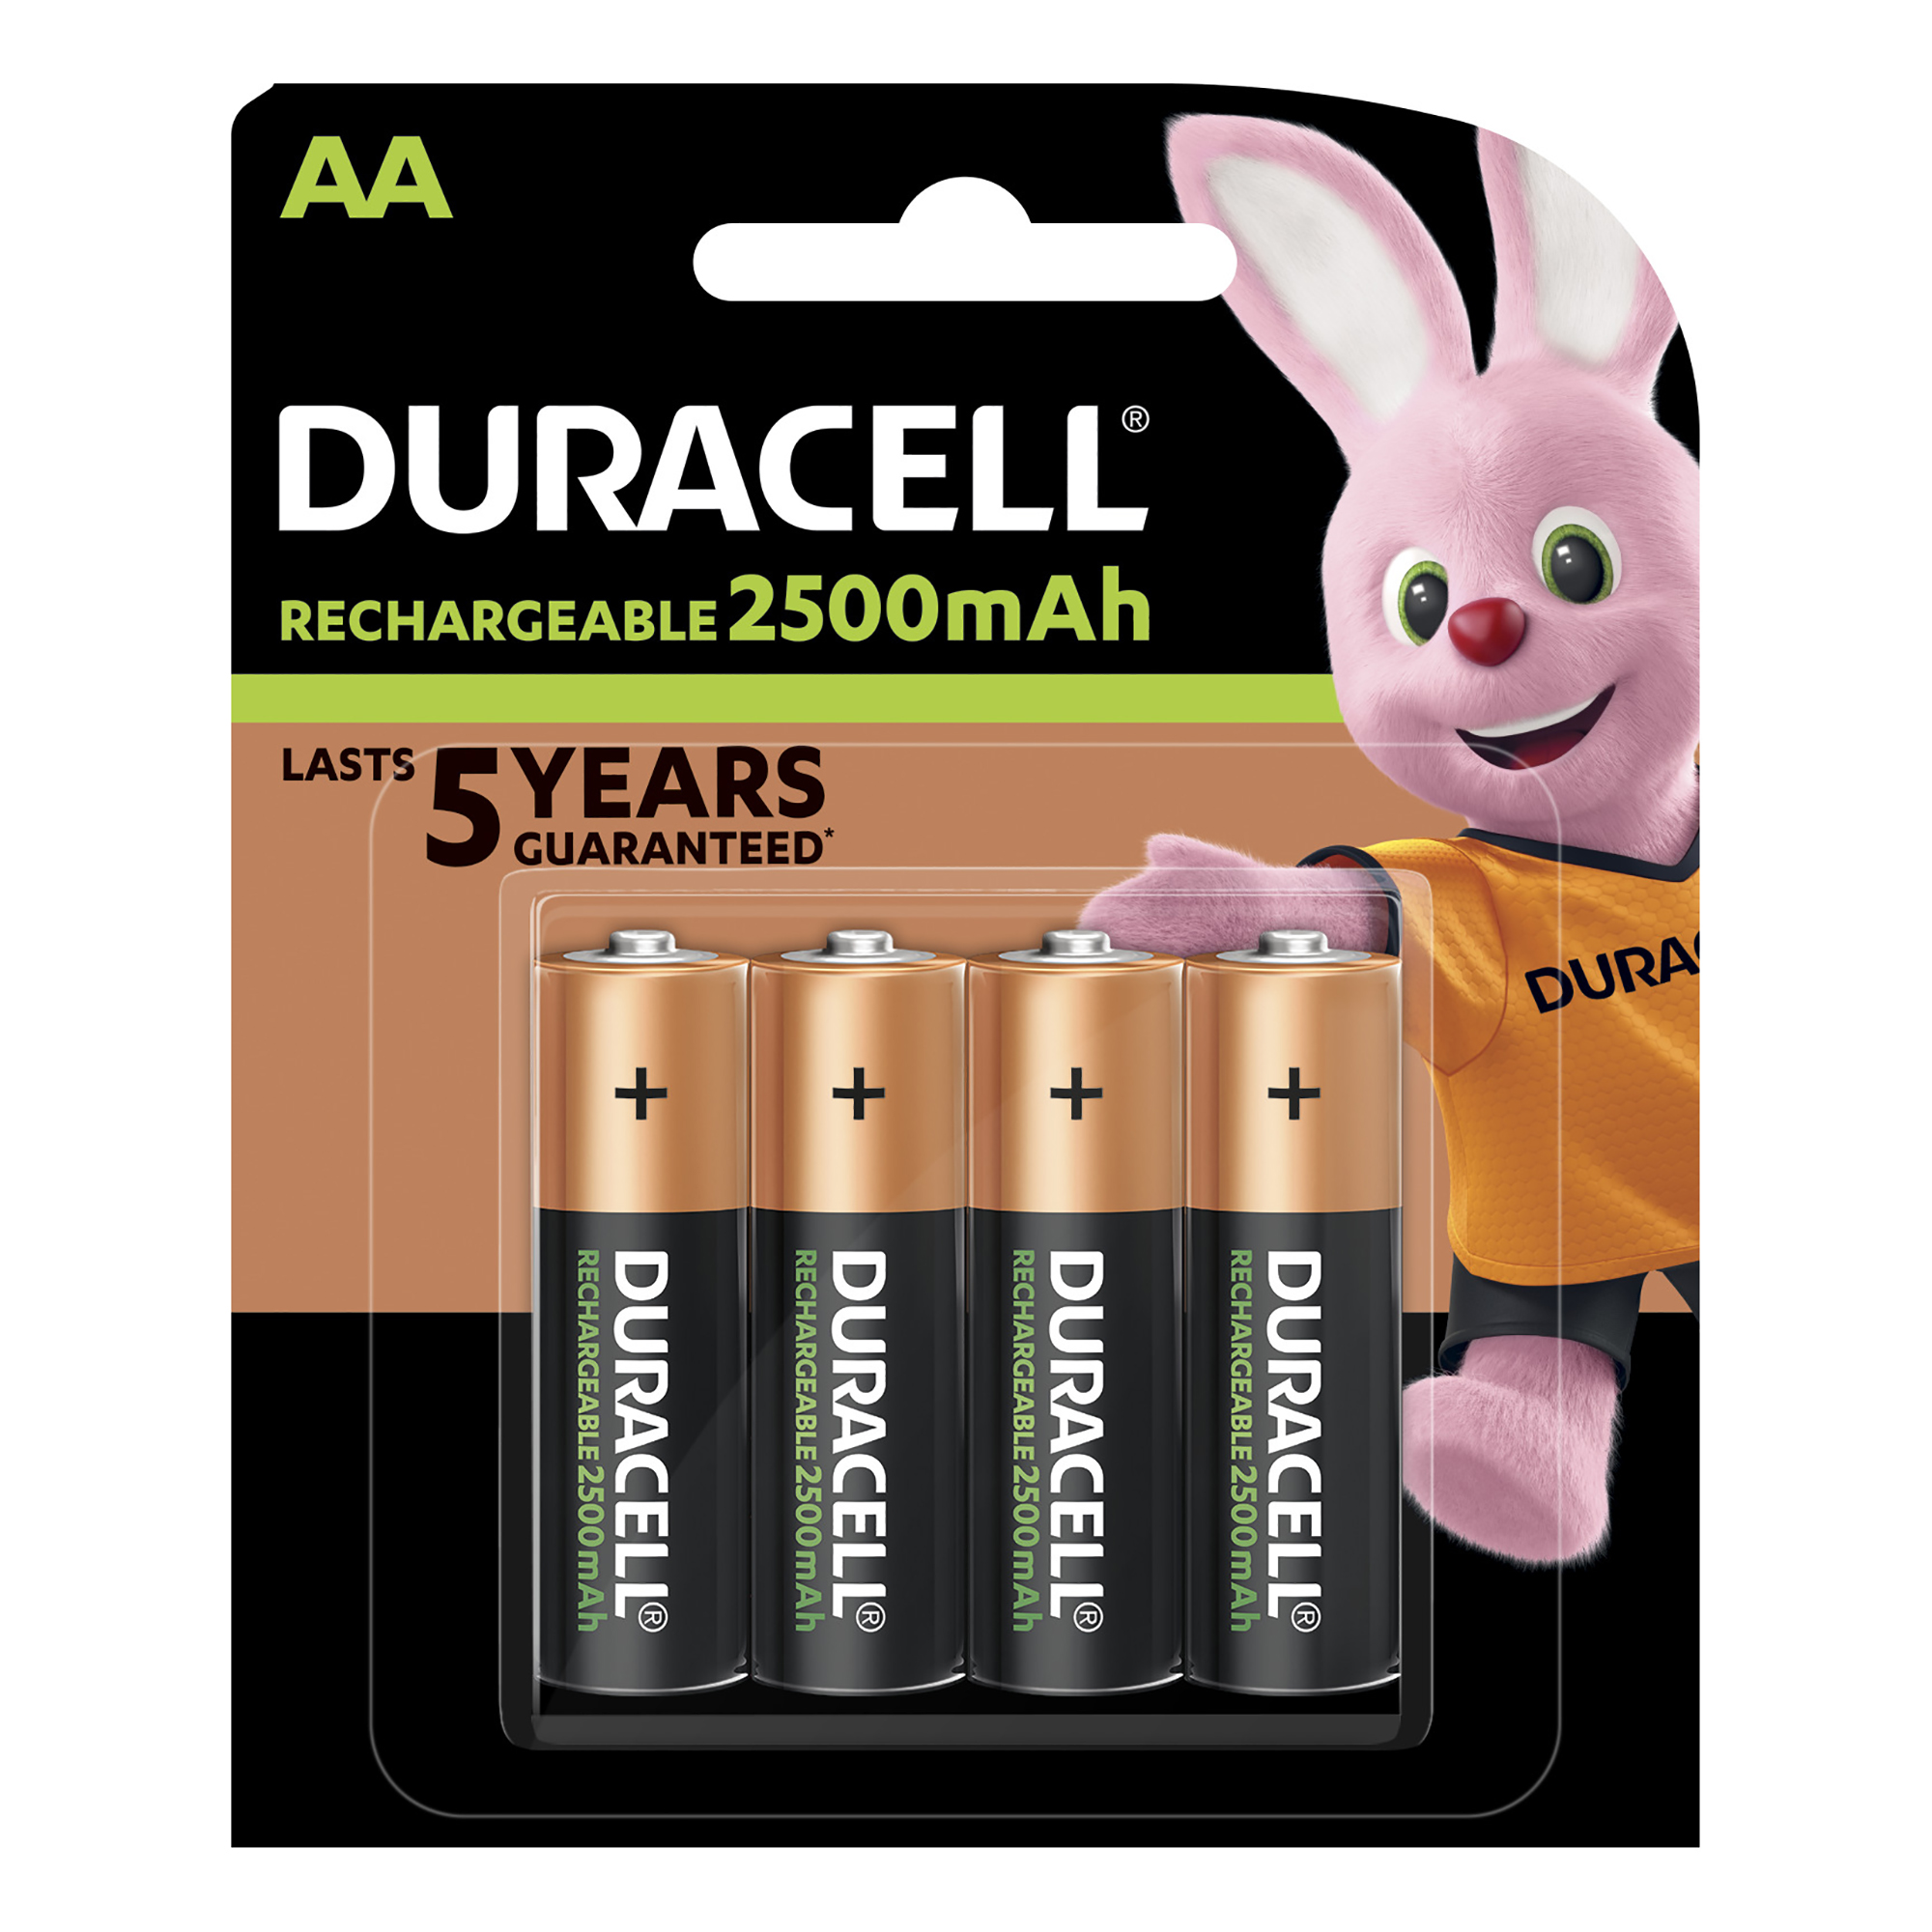 Duracell Stay Charged Battery Long-life Rechargeable 1950mAh AA Size 1.2V Ref 81418237 [Pack 4]